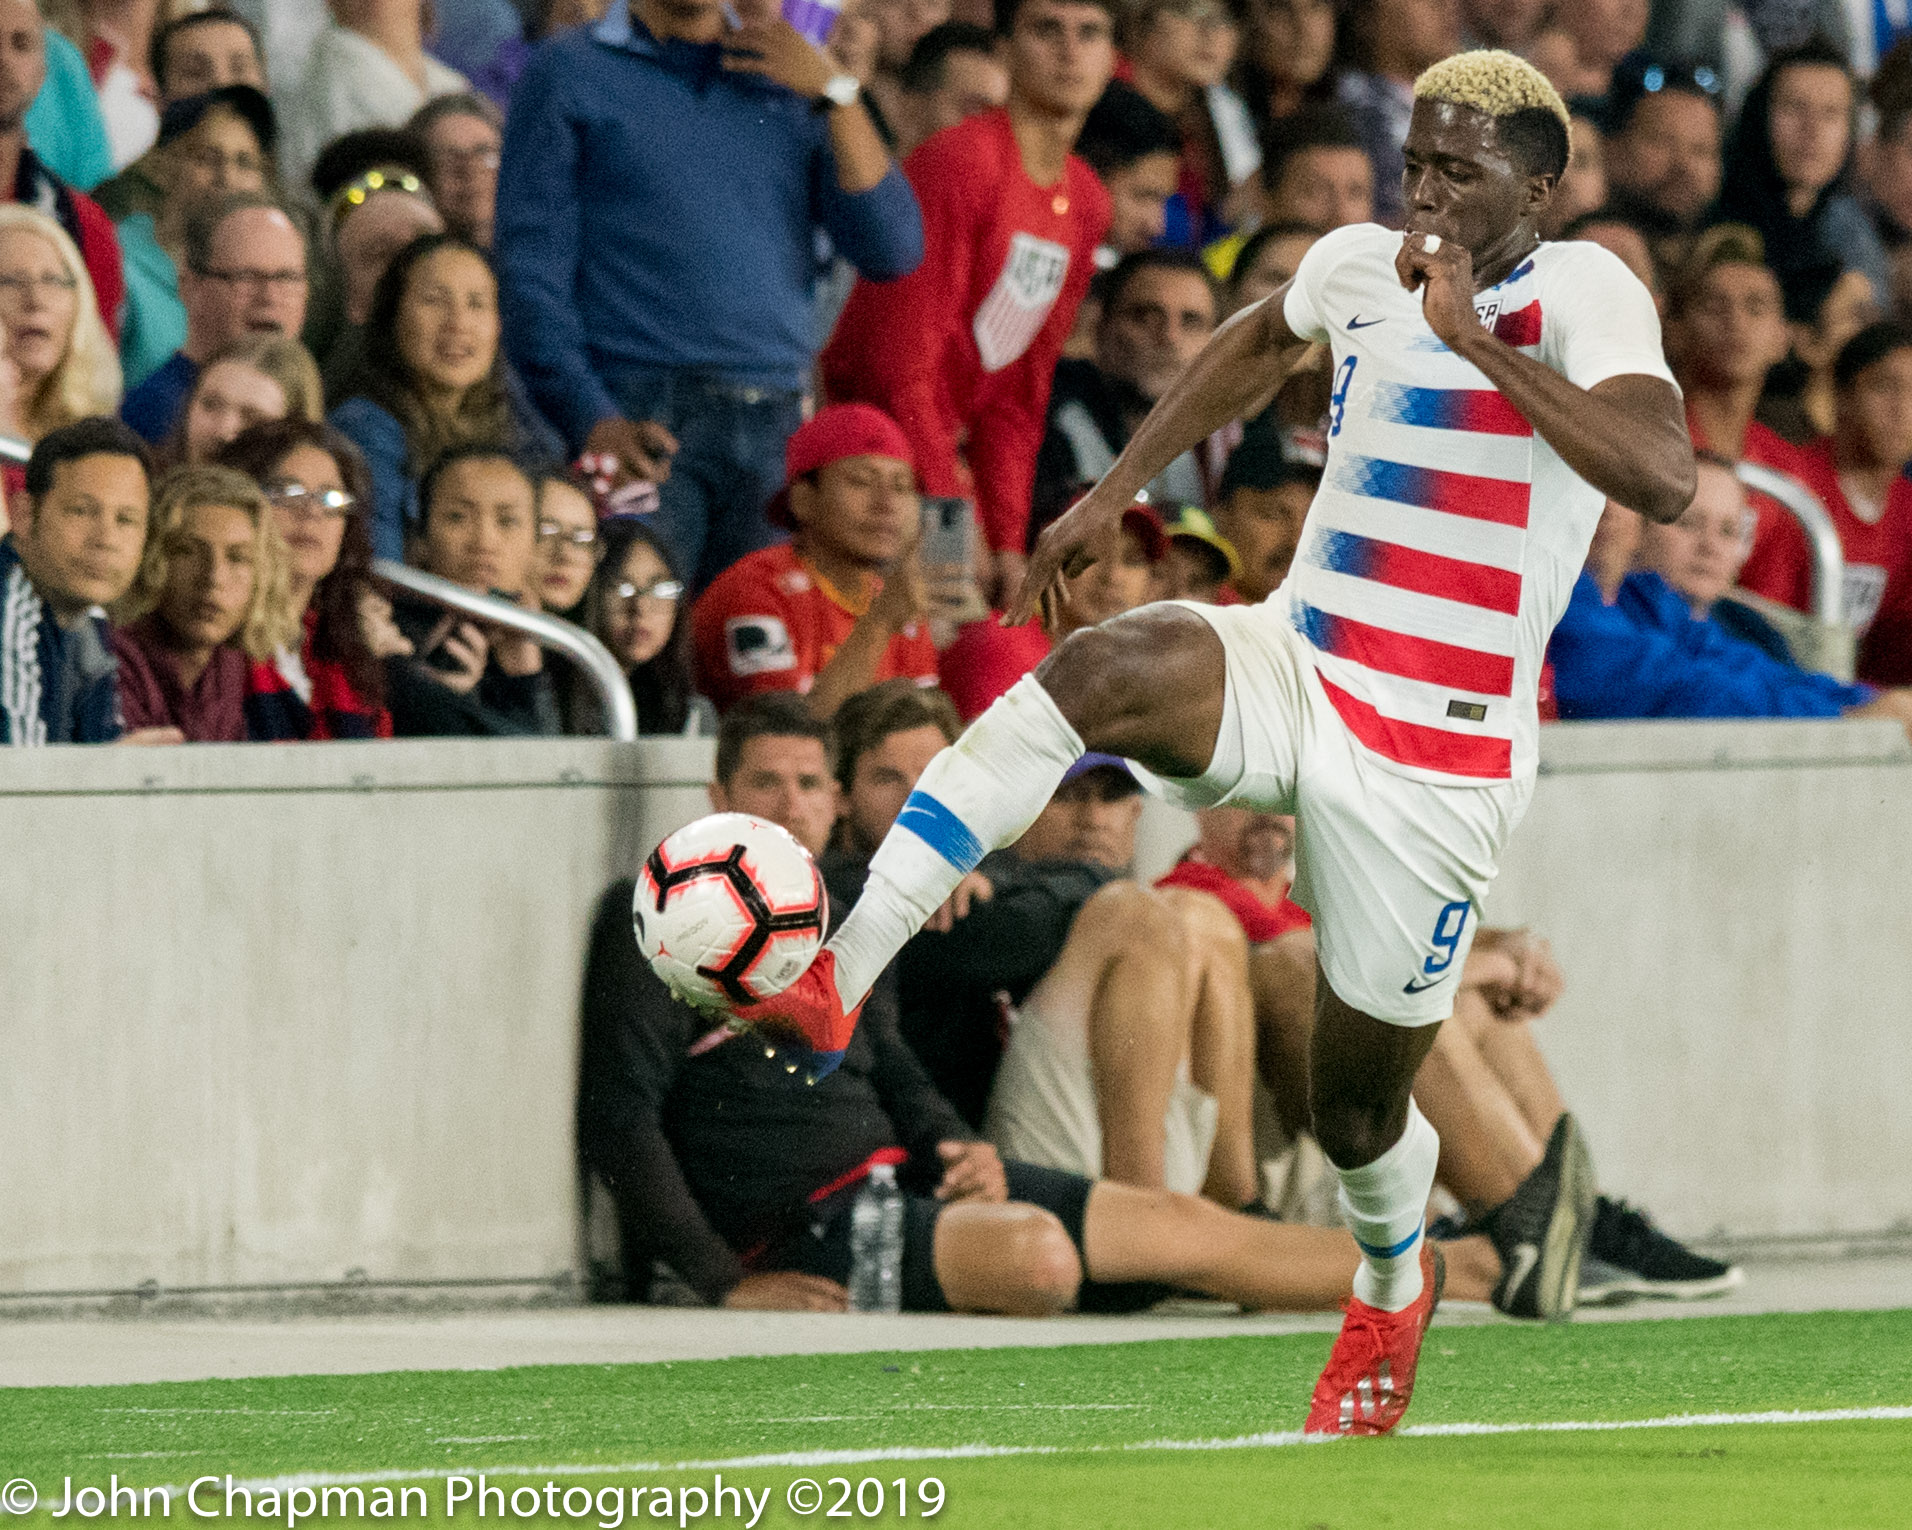 USMNT's Gyasi Zardes runs the ball for the breakthrough goal of the game against Ecuador at Orlando City Stadium Thursday, March 21, 2019. Photo: John Chapman.